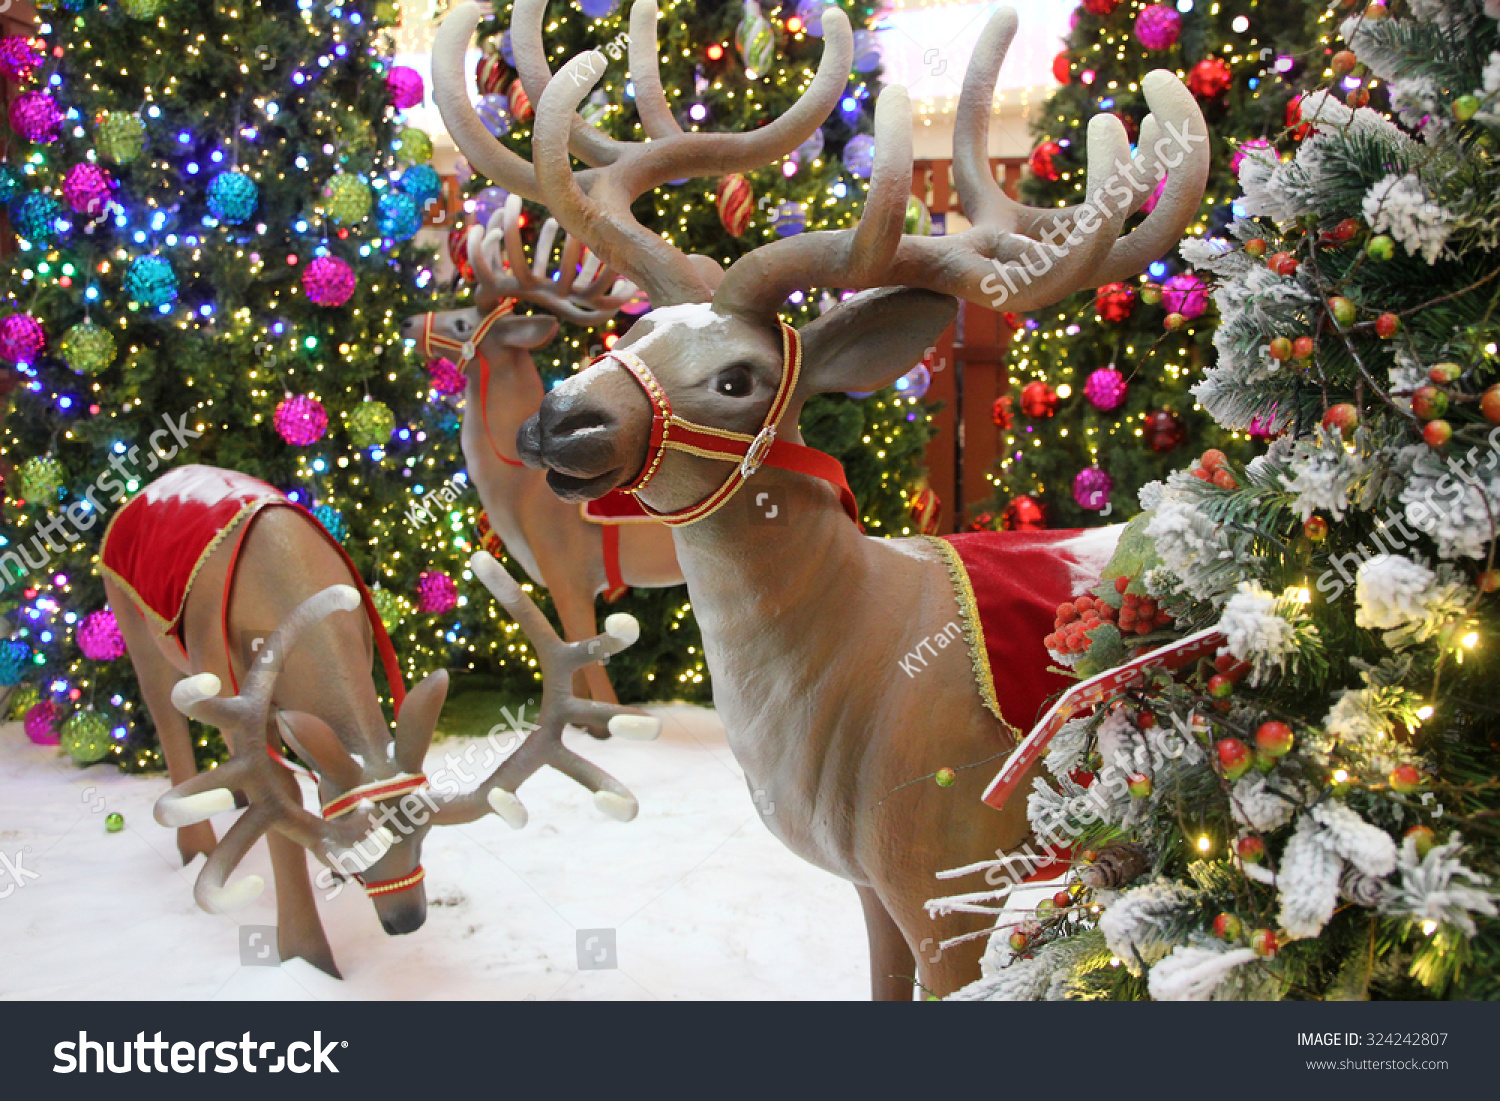 Reindeer Statues Christmas Decorations Stock Photo